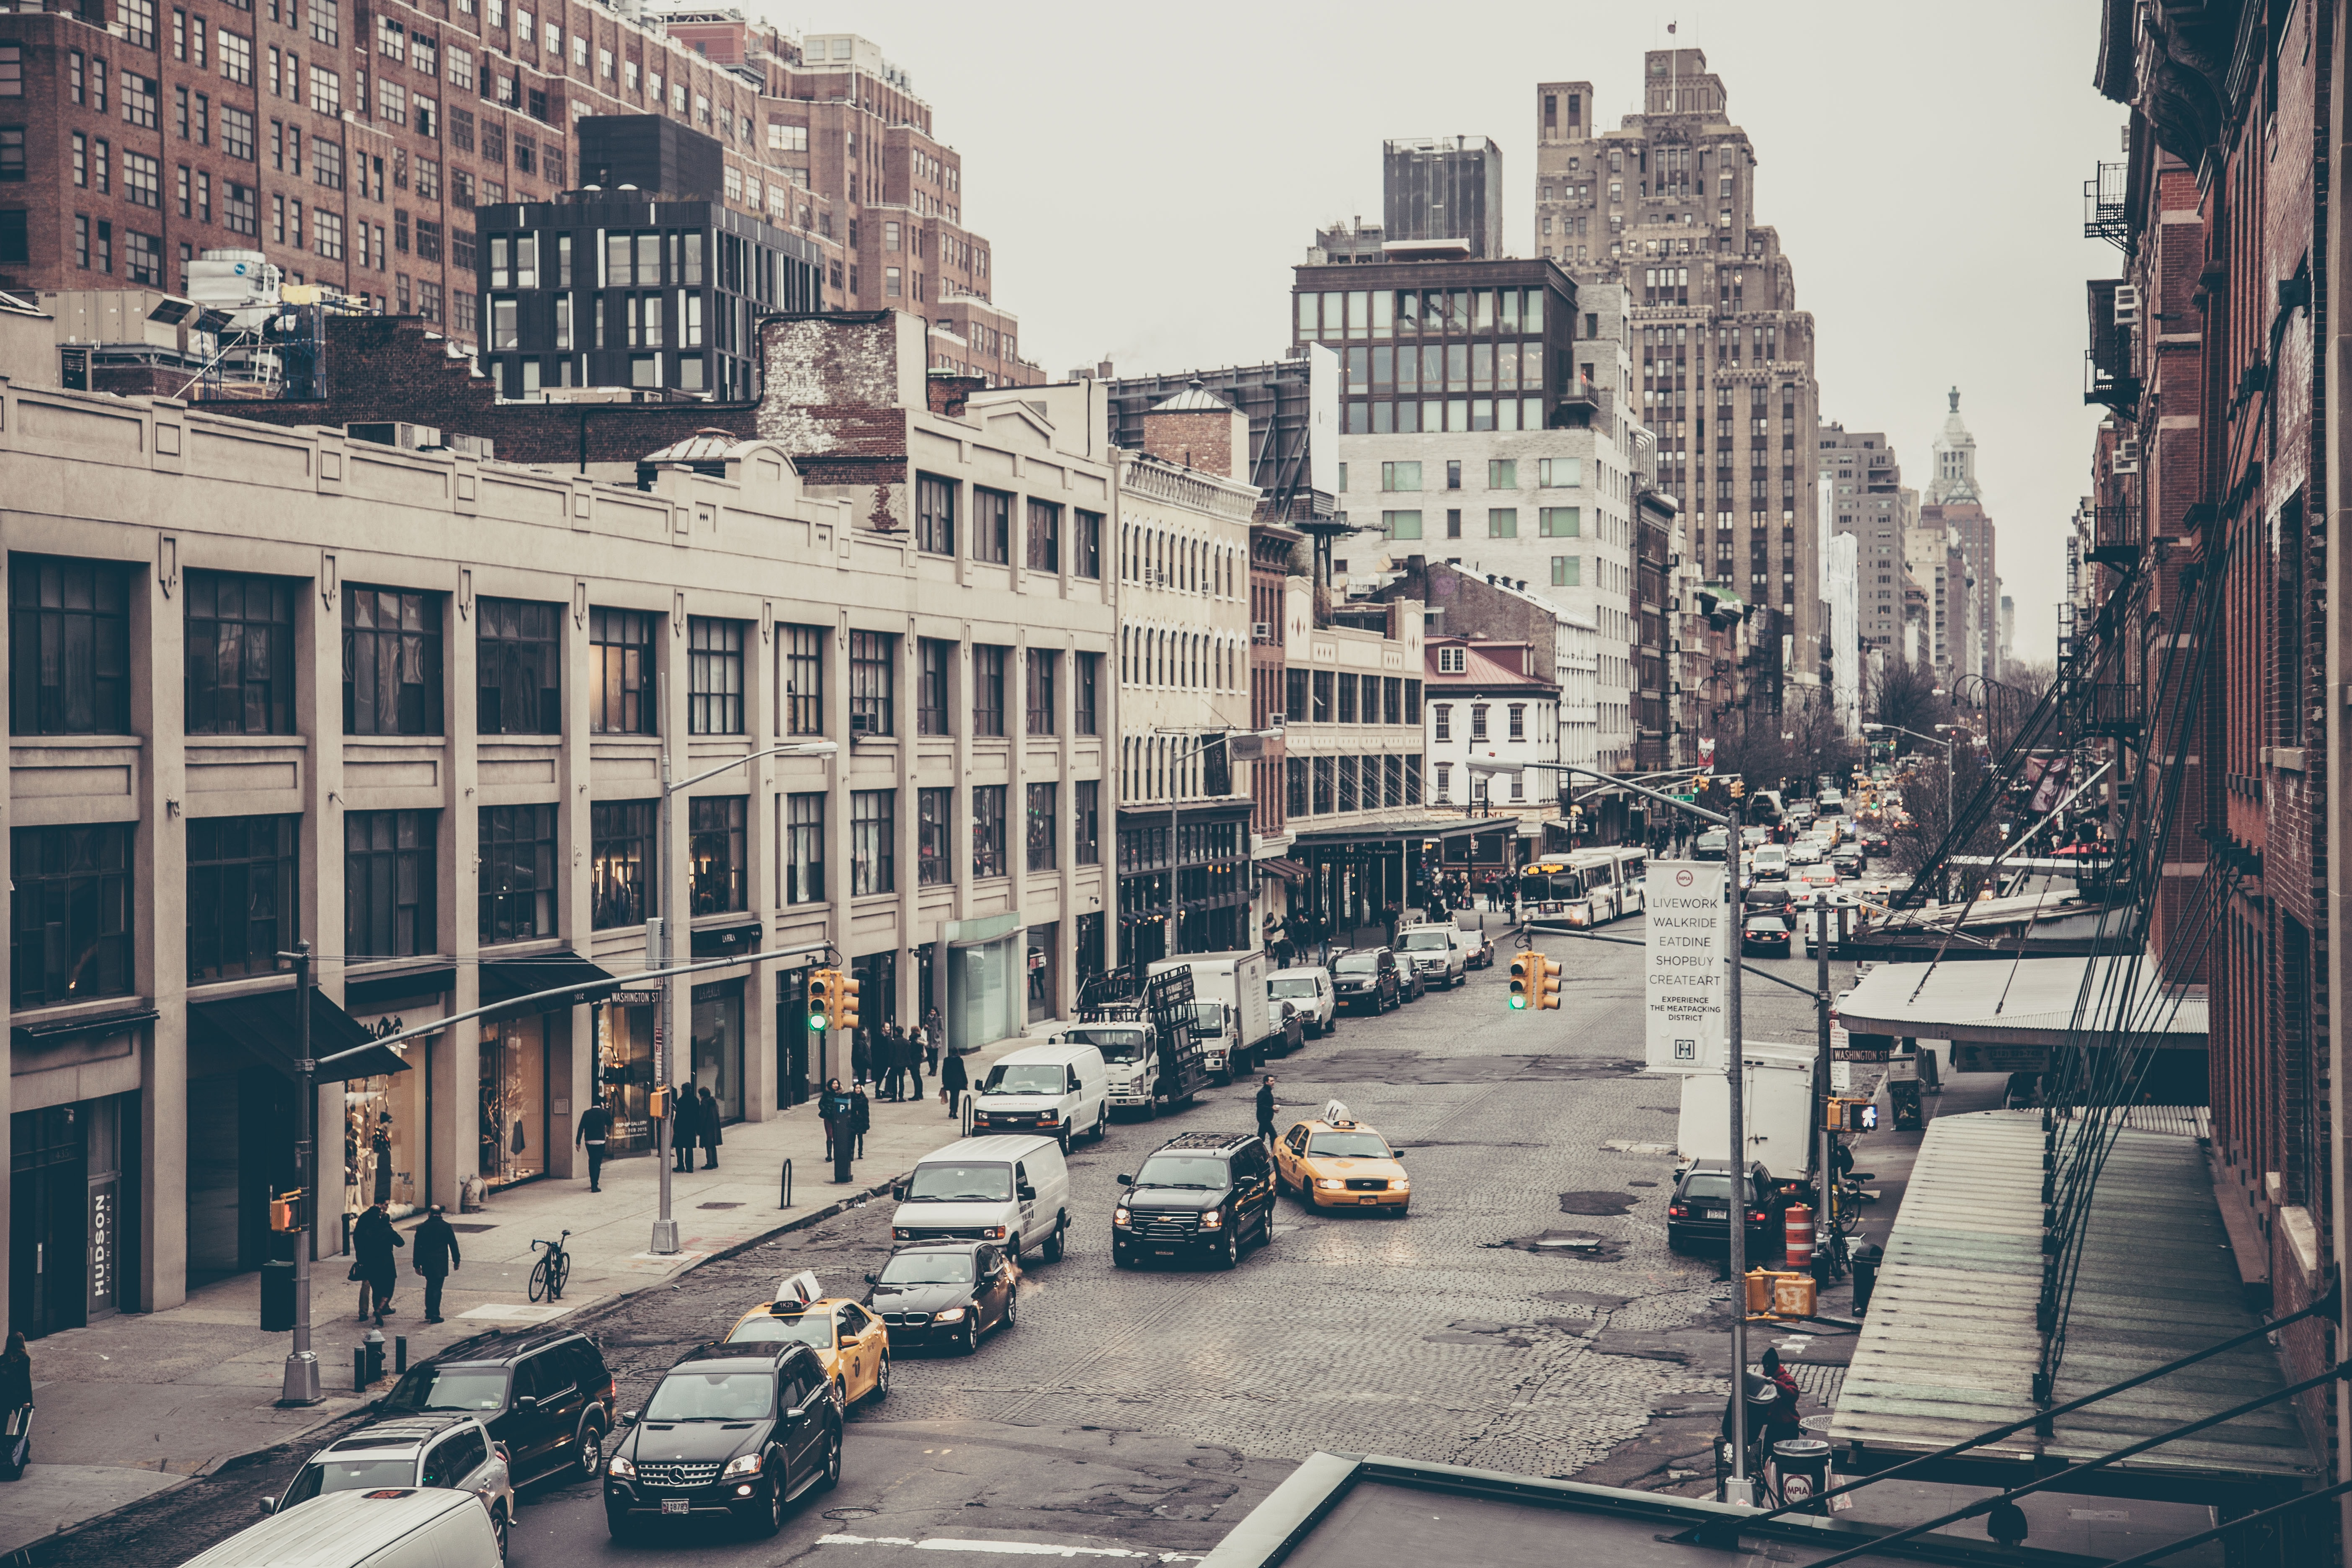 Urban New York City street with brick buildings and traffic